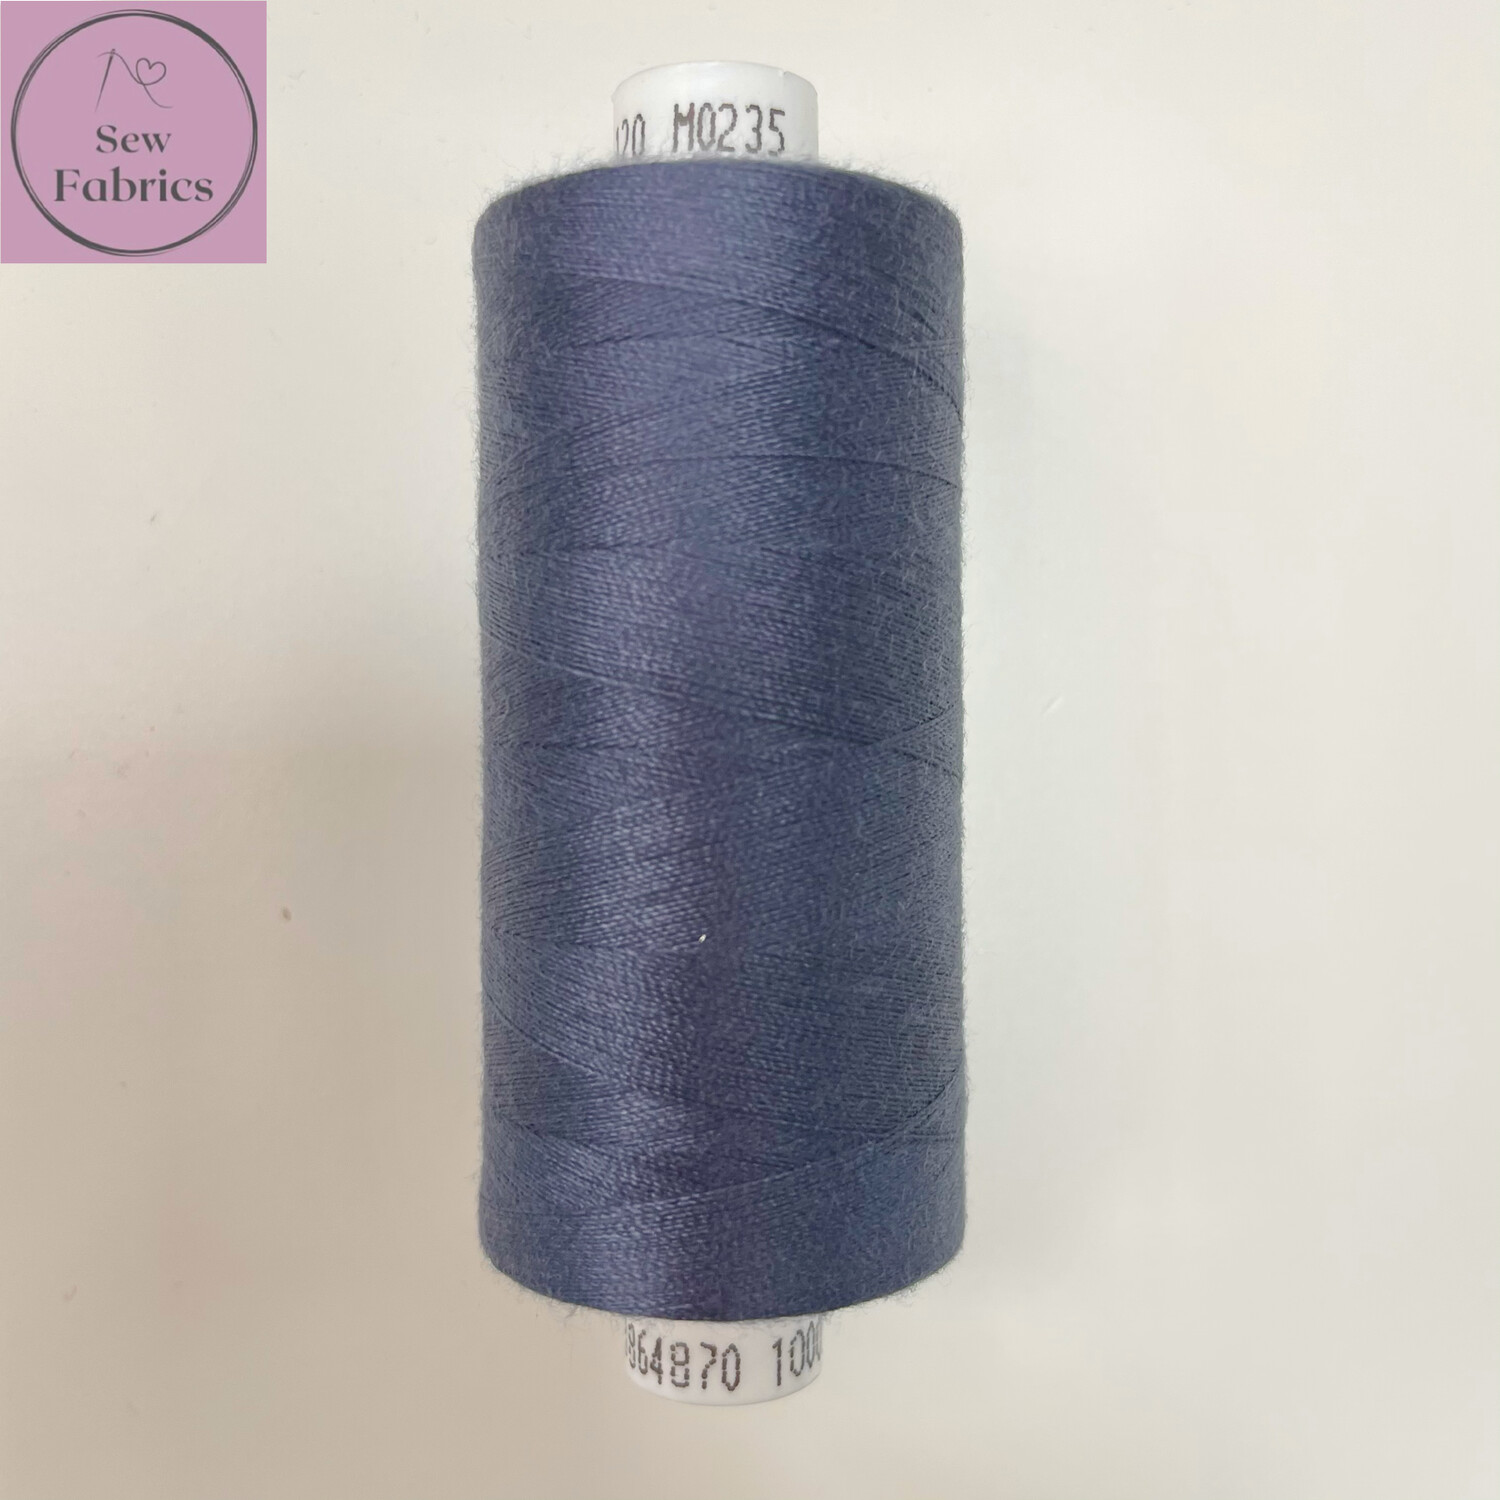 1 x 1000y Coats Moon Thread - Airforce Blue M235